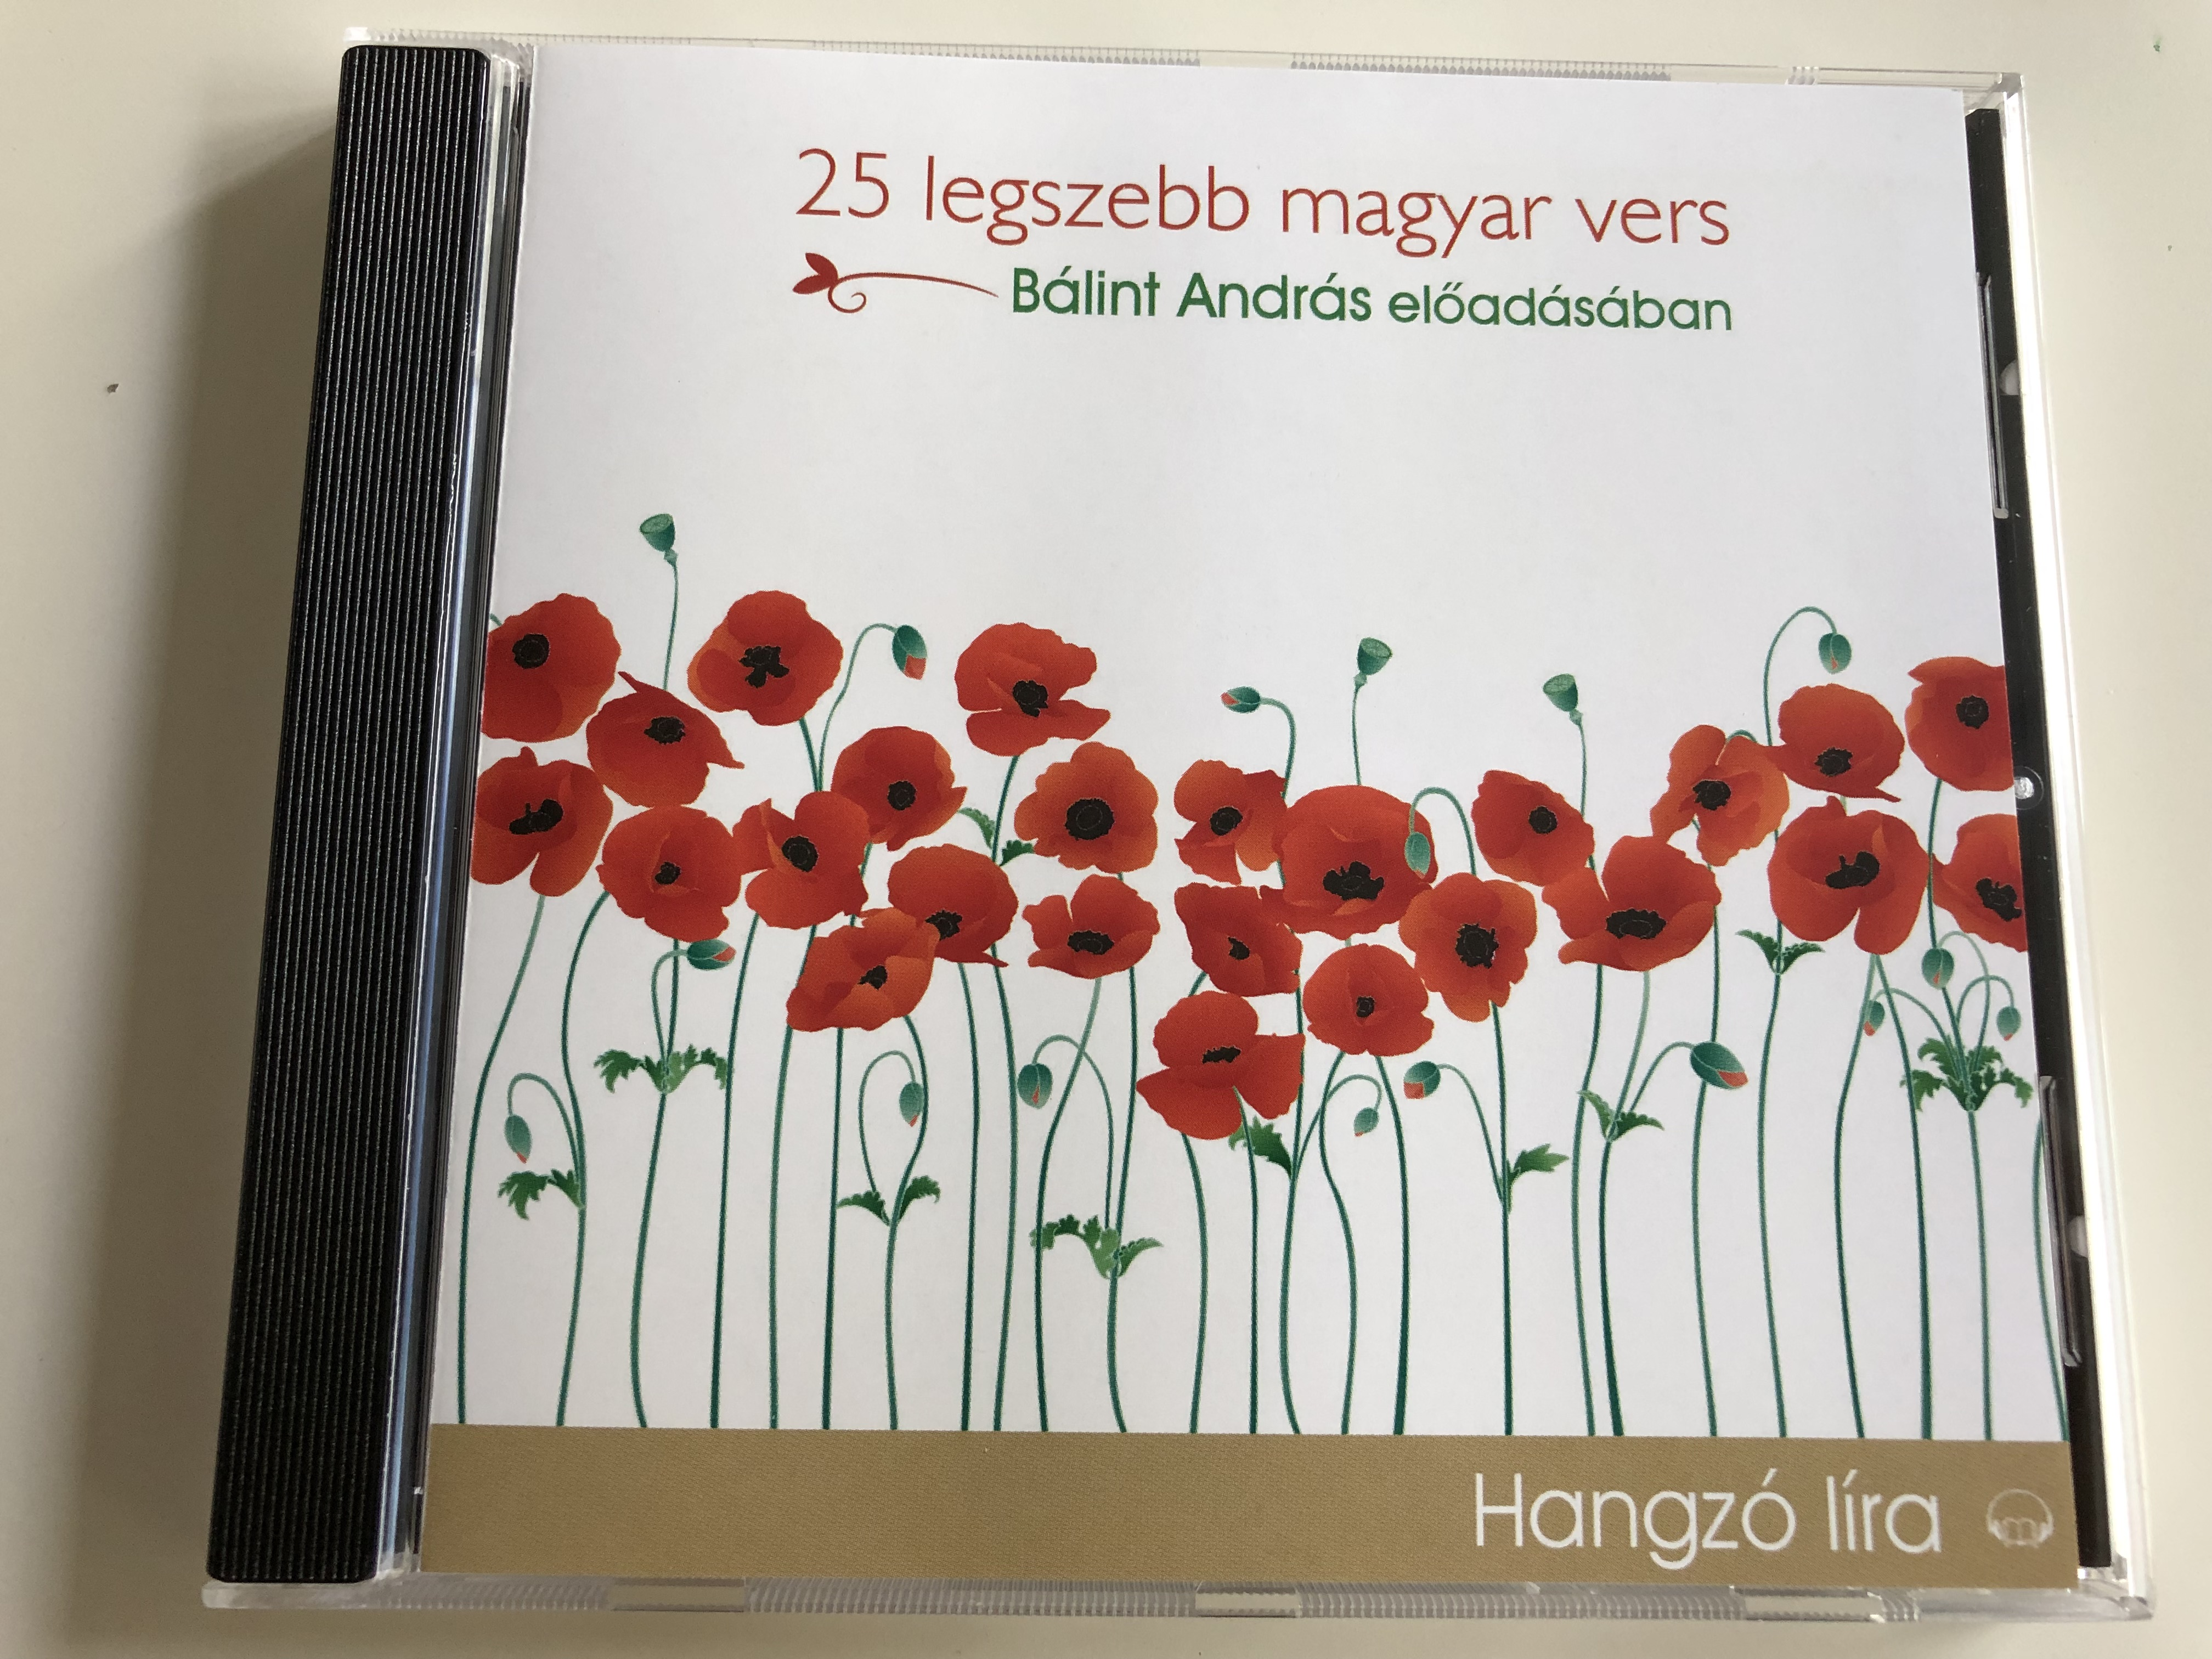 25-legszebb-magyar-vers-b-lint-andr-s-el-ad-s-ban-audio-cd-2018-25-most-beautiful-hungarian-poems-recited-by-andr-s-b-lint-kossuth-mojzer-1-.jpg